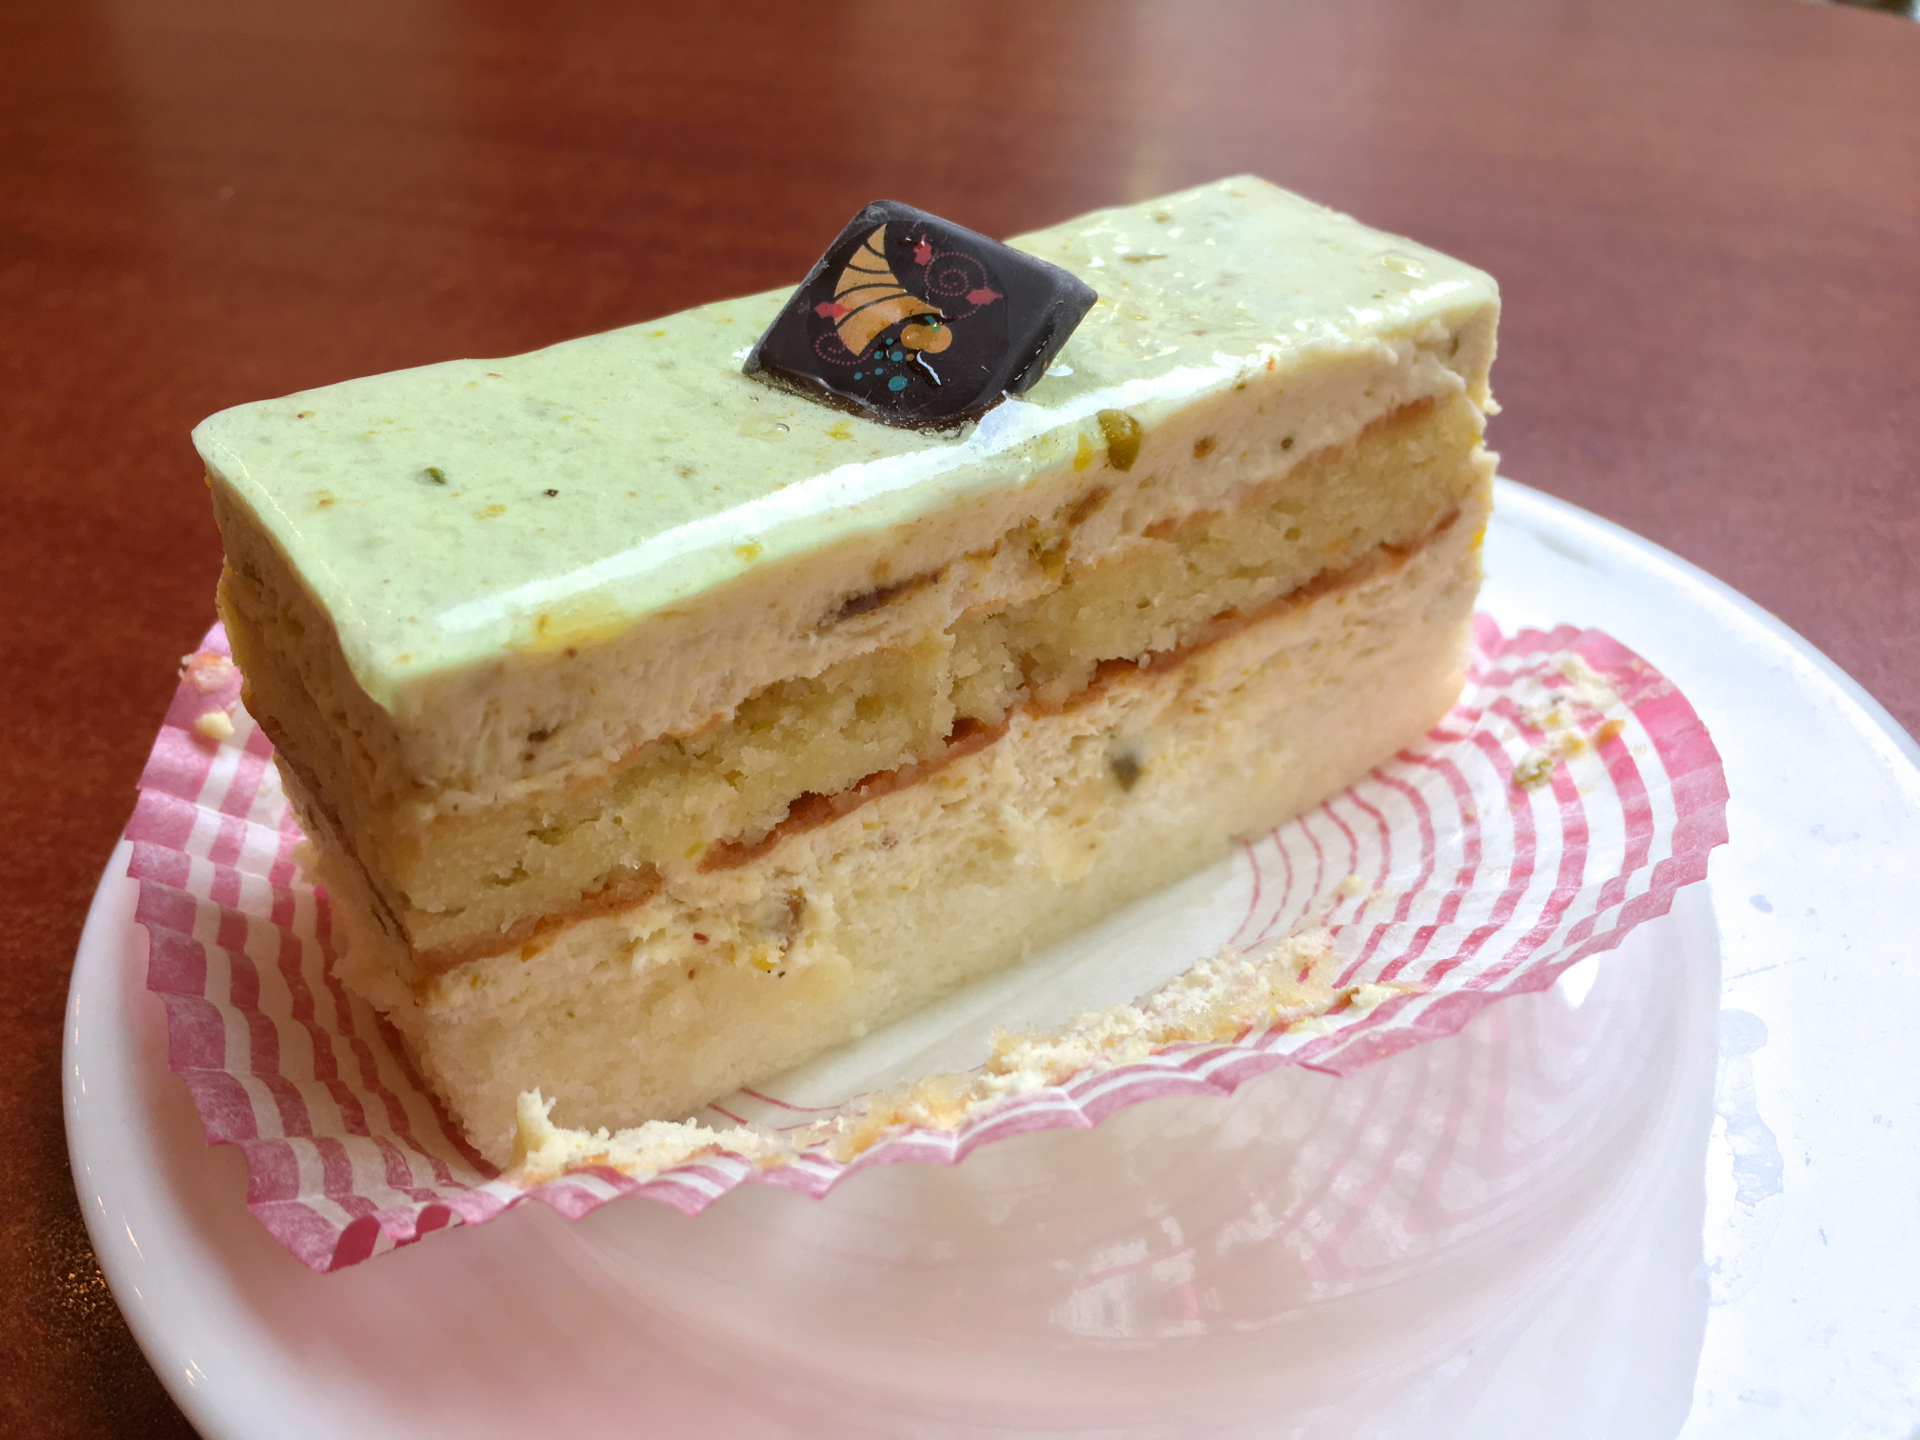 A Pistachio mousse pastry at Bijan Bakery & Cafe.